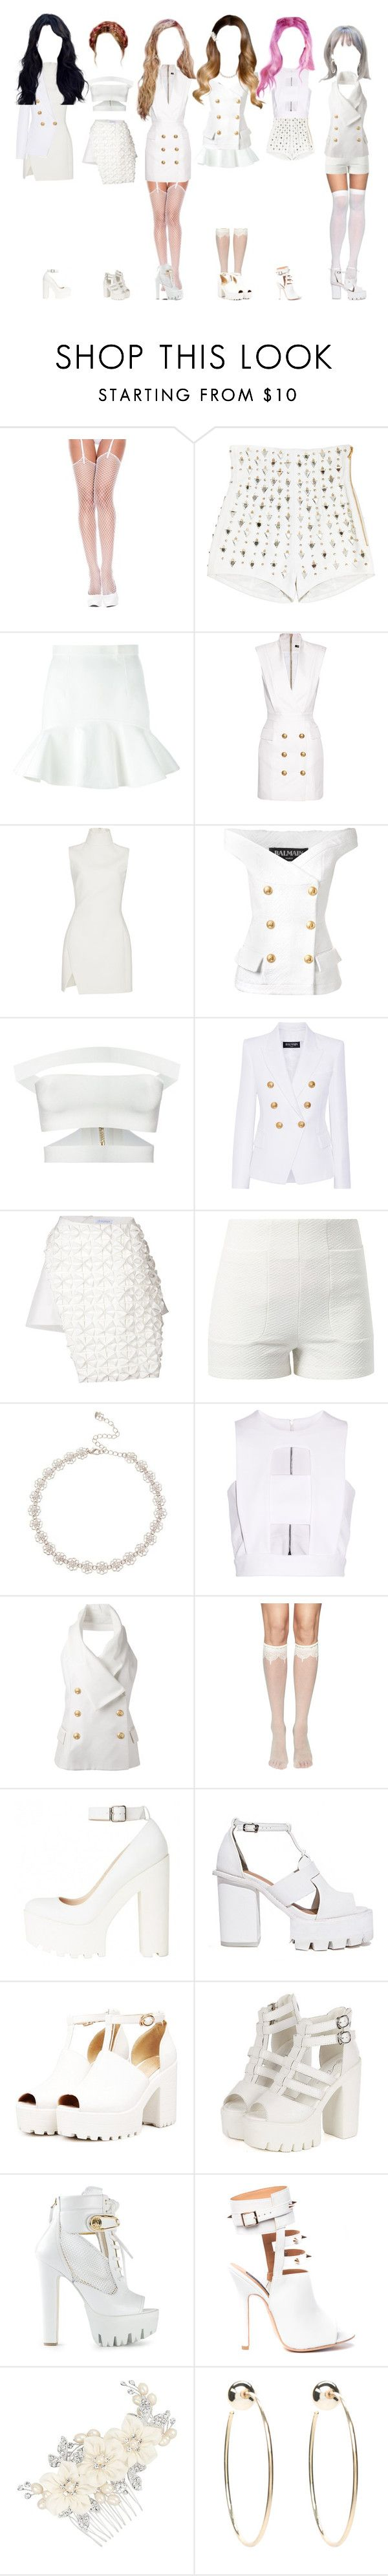 """""""— pink20 sugar or spice music video , group scene"""" by frealbird ❤ liked on Polyvore featuring ToBeInStyle, Balmain, Dsquared2, Thierry Mugler, J.W. Anderson, Lost Society, Lipsy, Cushnie Et Ochs, Versus and Alejandra G"""